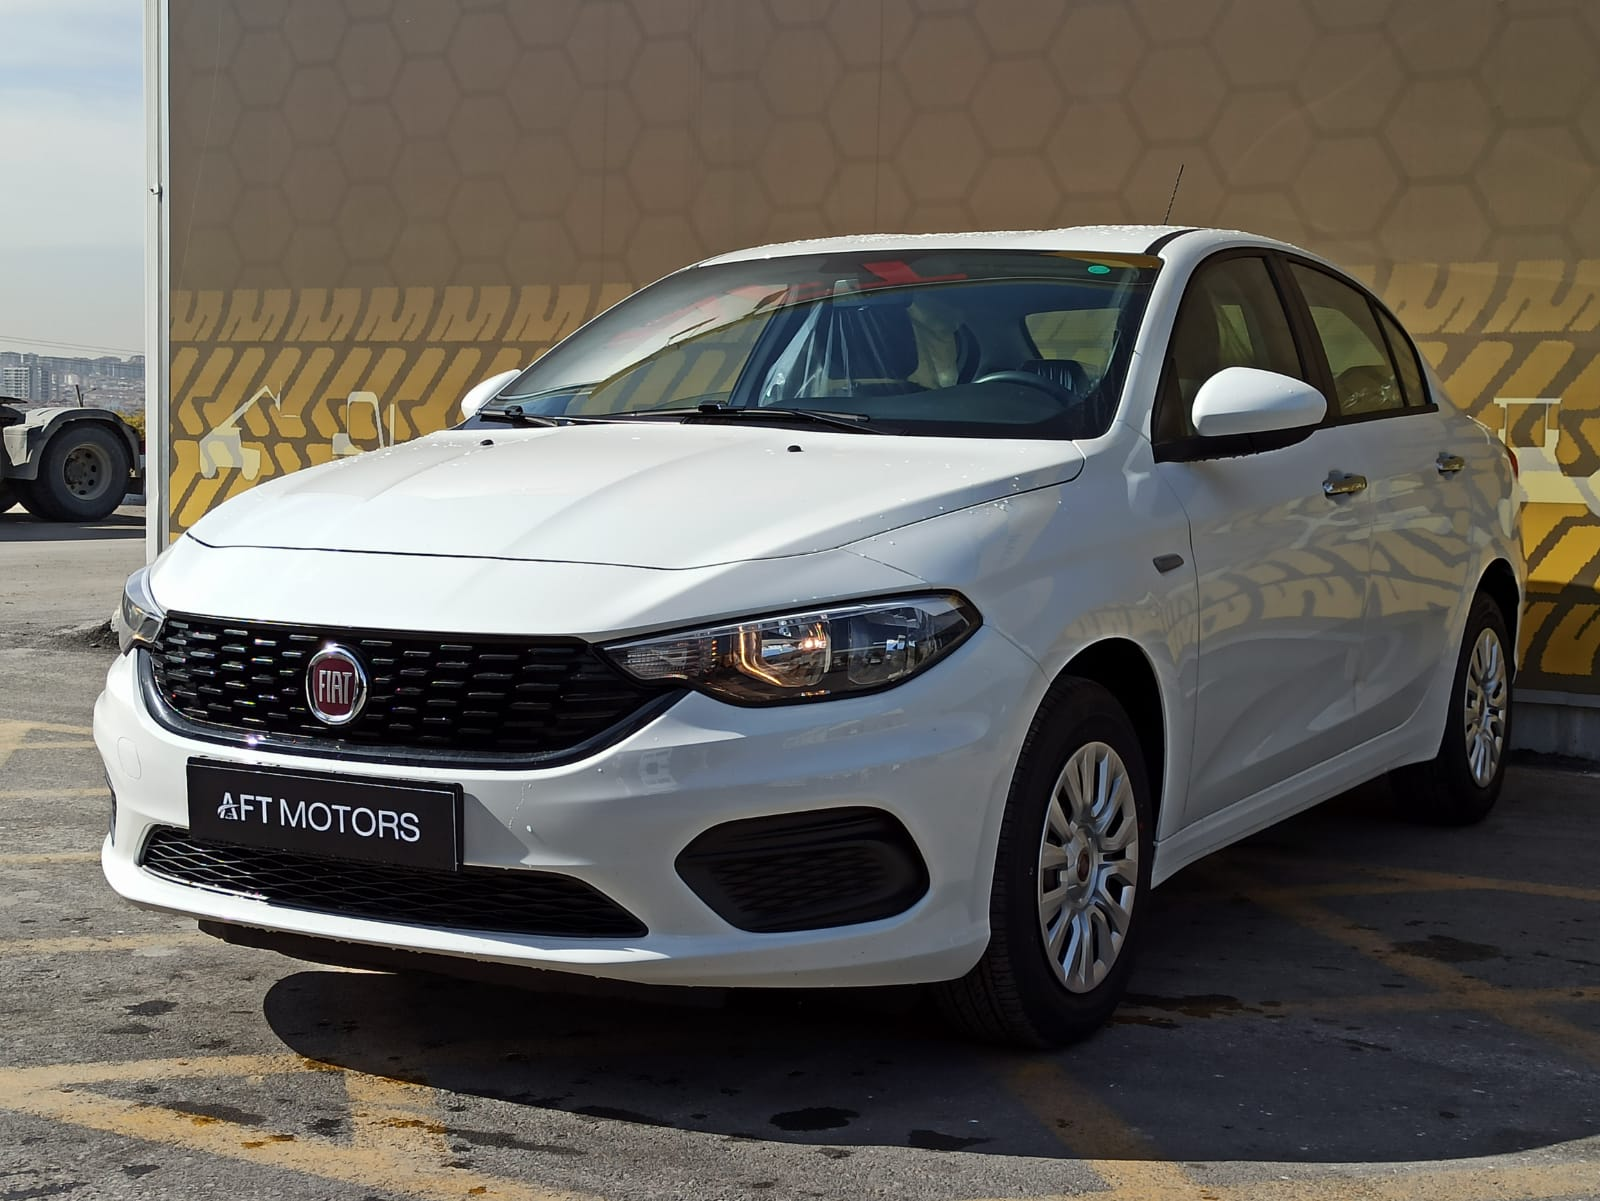 2020 MODEL FIAT EGEA 1.6Mjet OTOMATİK EASY